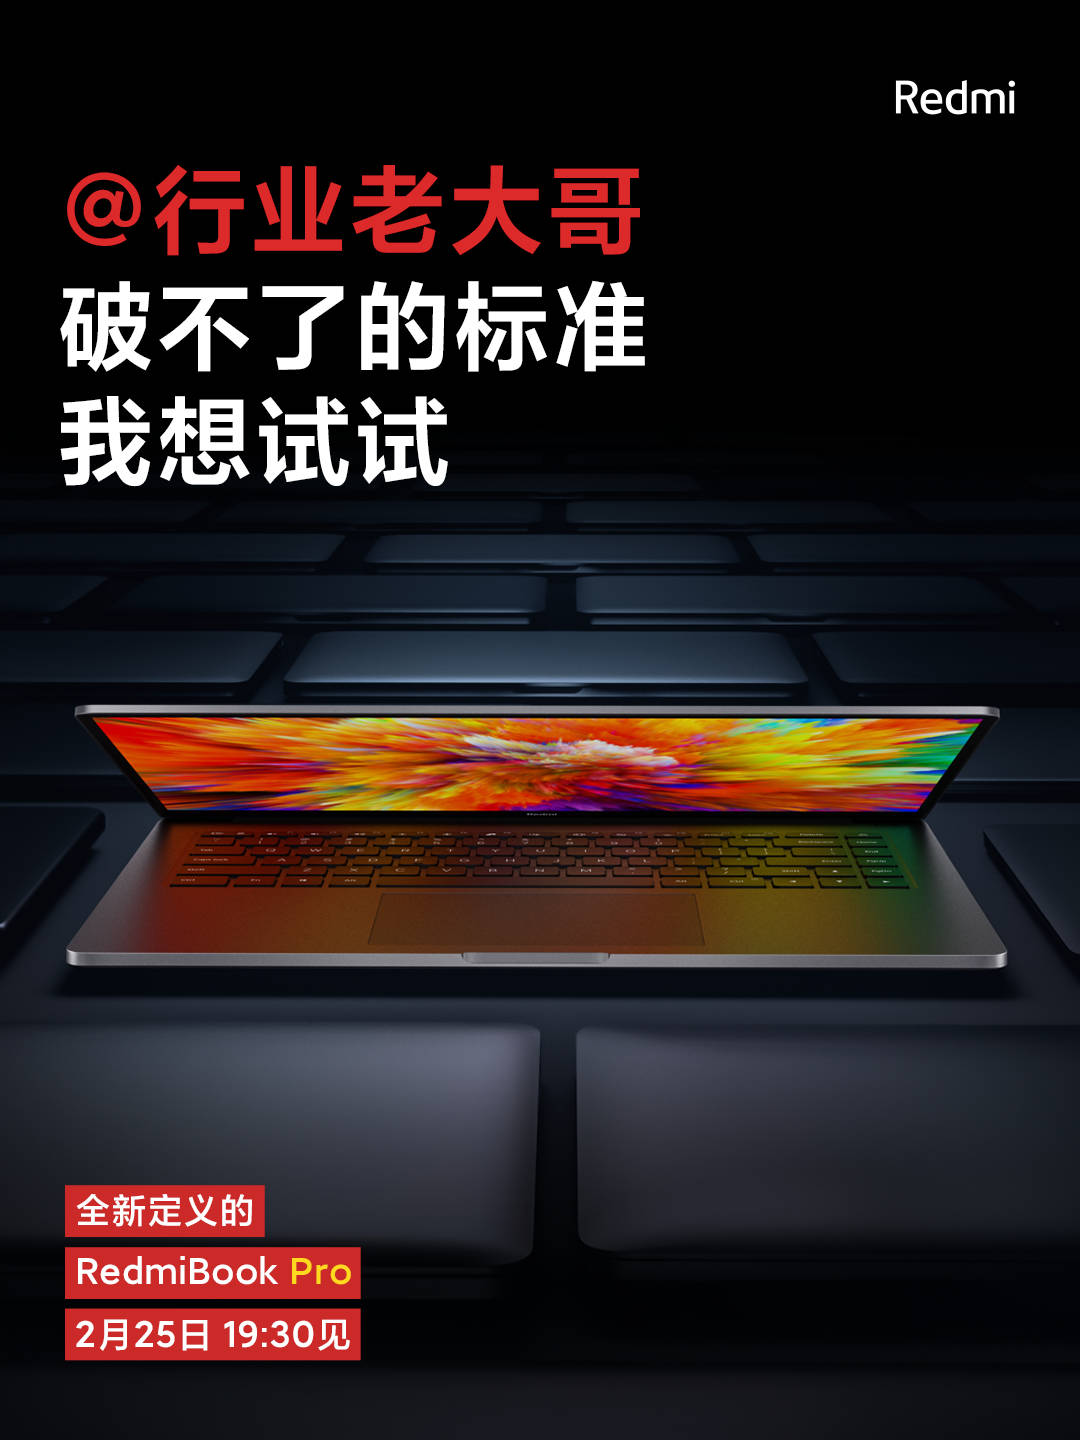 This is the new RedmiBook Pro, Xiaomi s most elegant and well-kept laptop